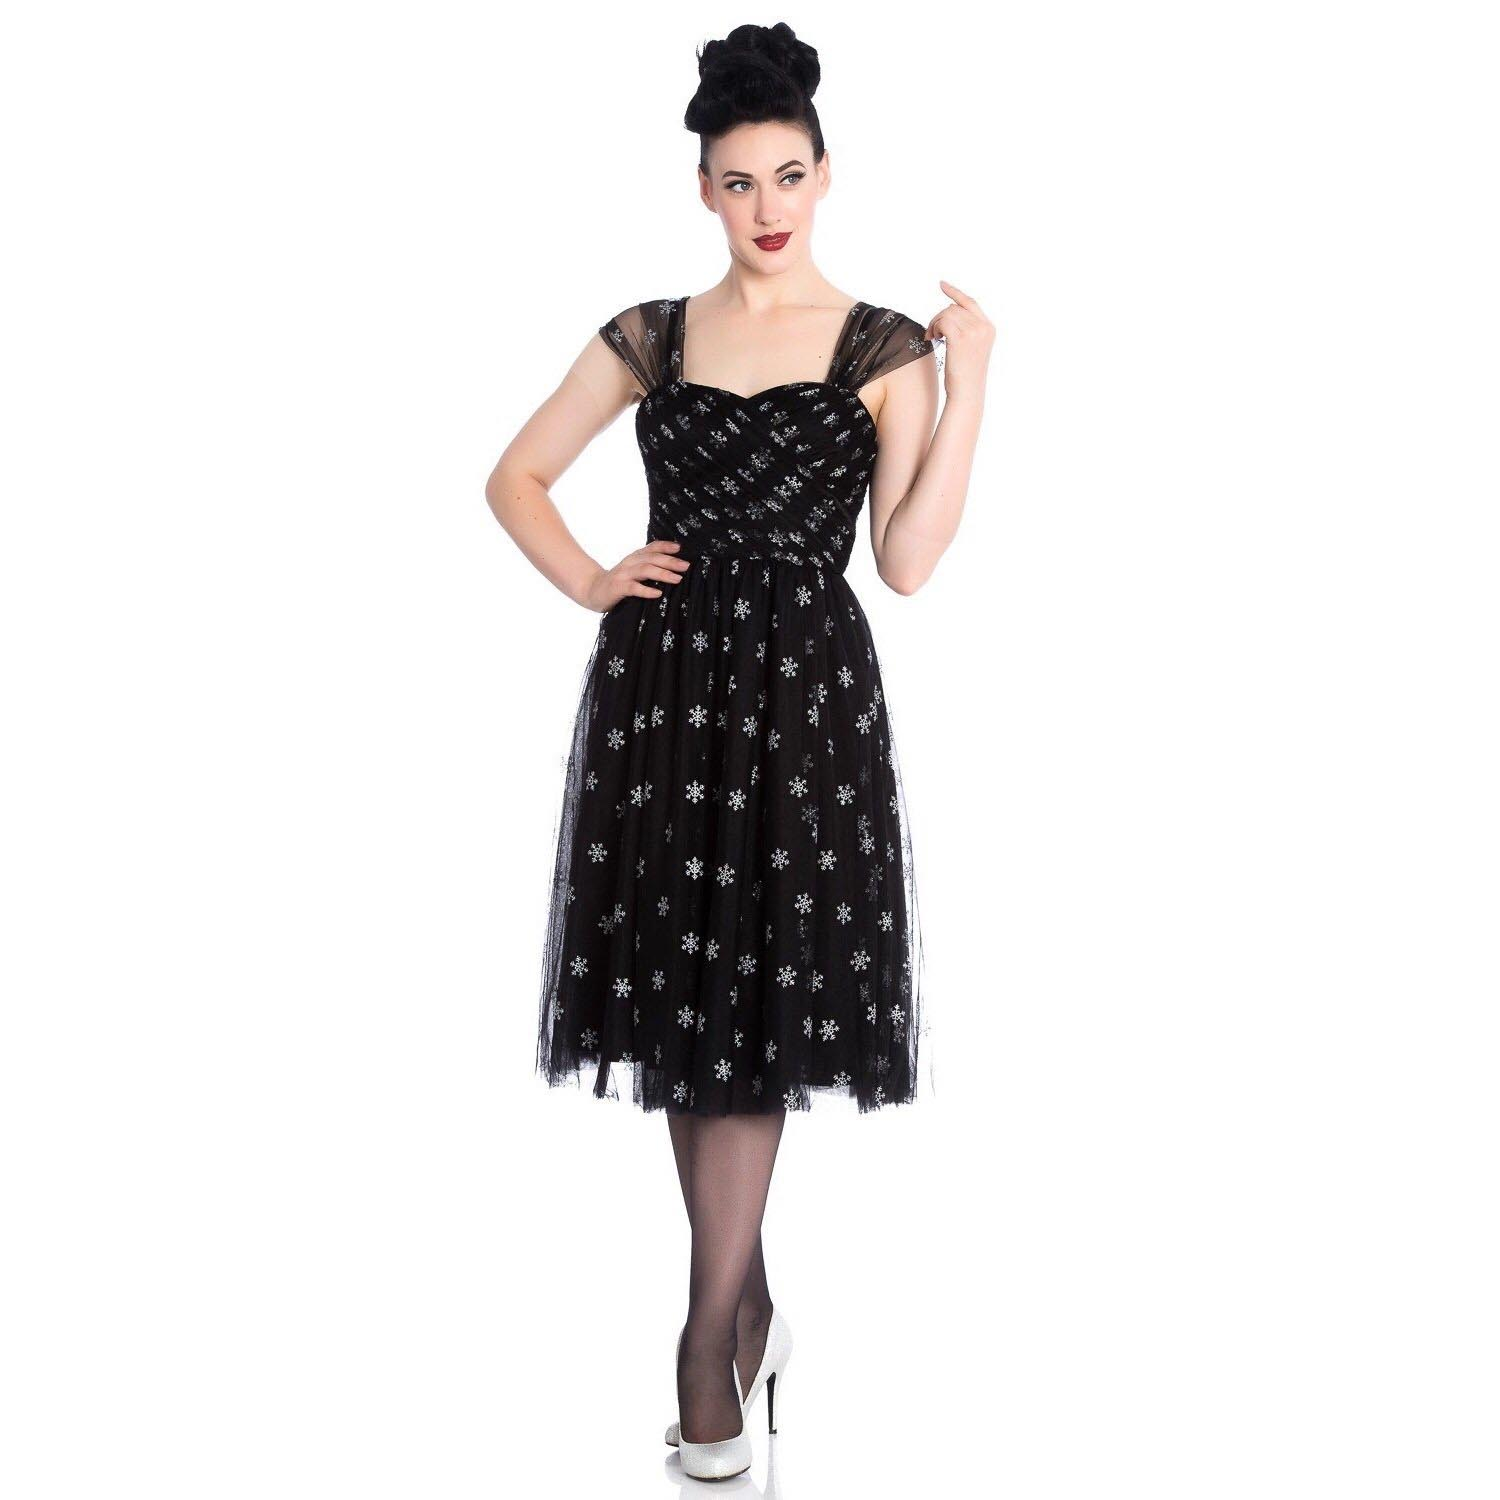 Hell-Bunny-50s-Black-Christmas-Dress-SNOWSTAR-Glitter-Snowflakes-All-Sizes thumbnail 19